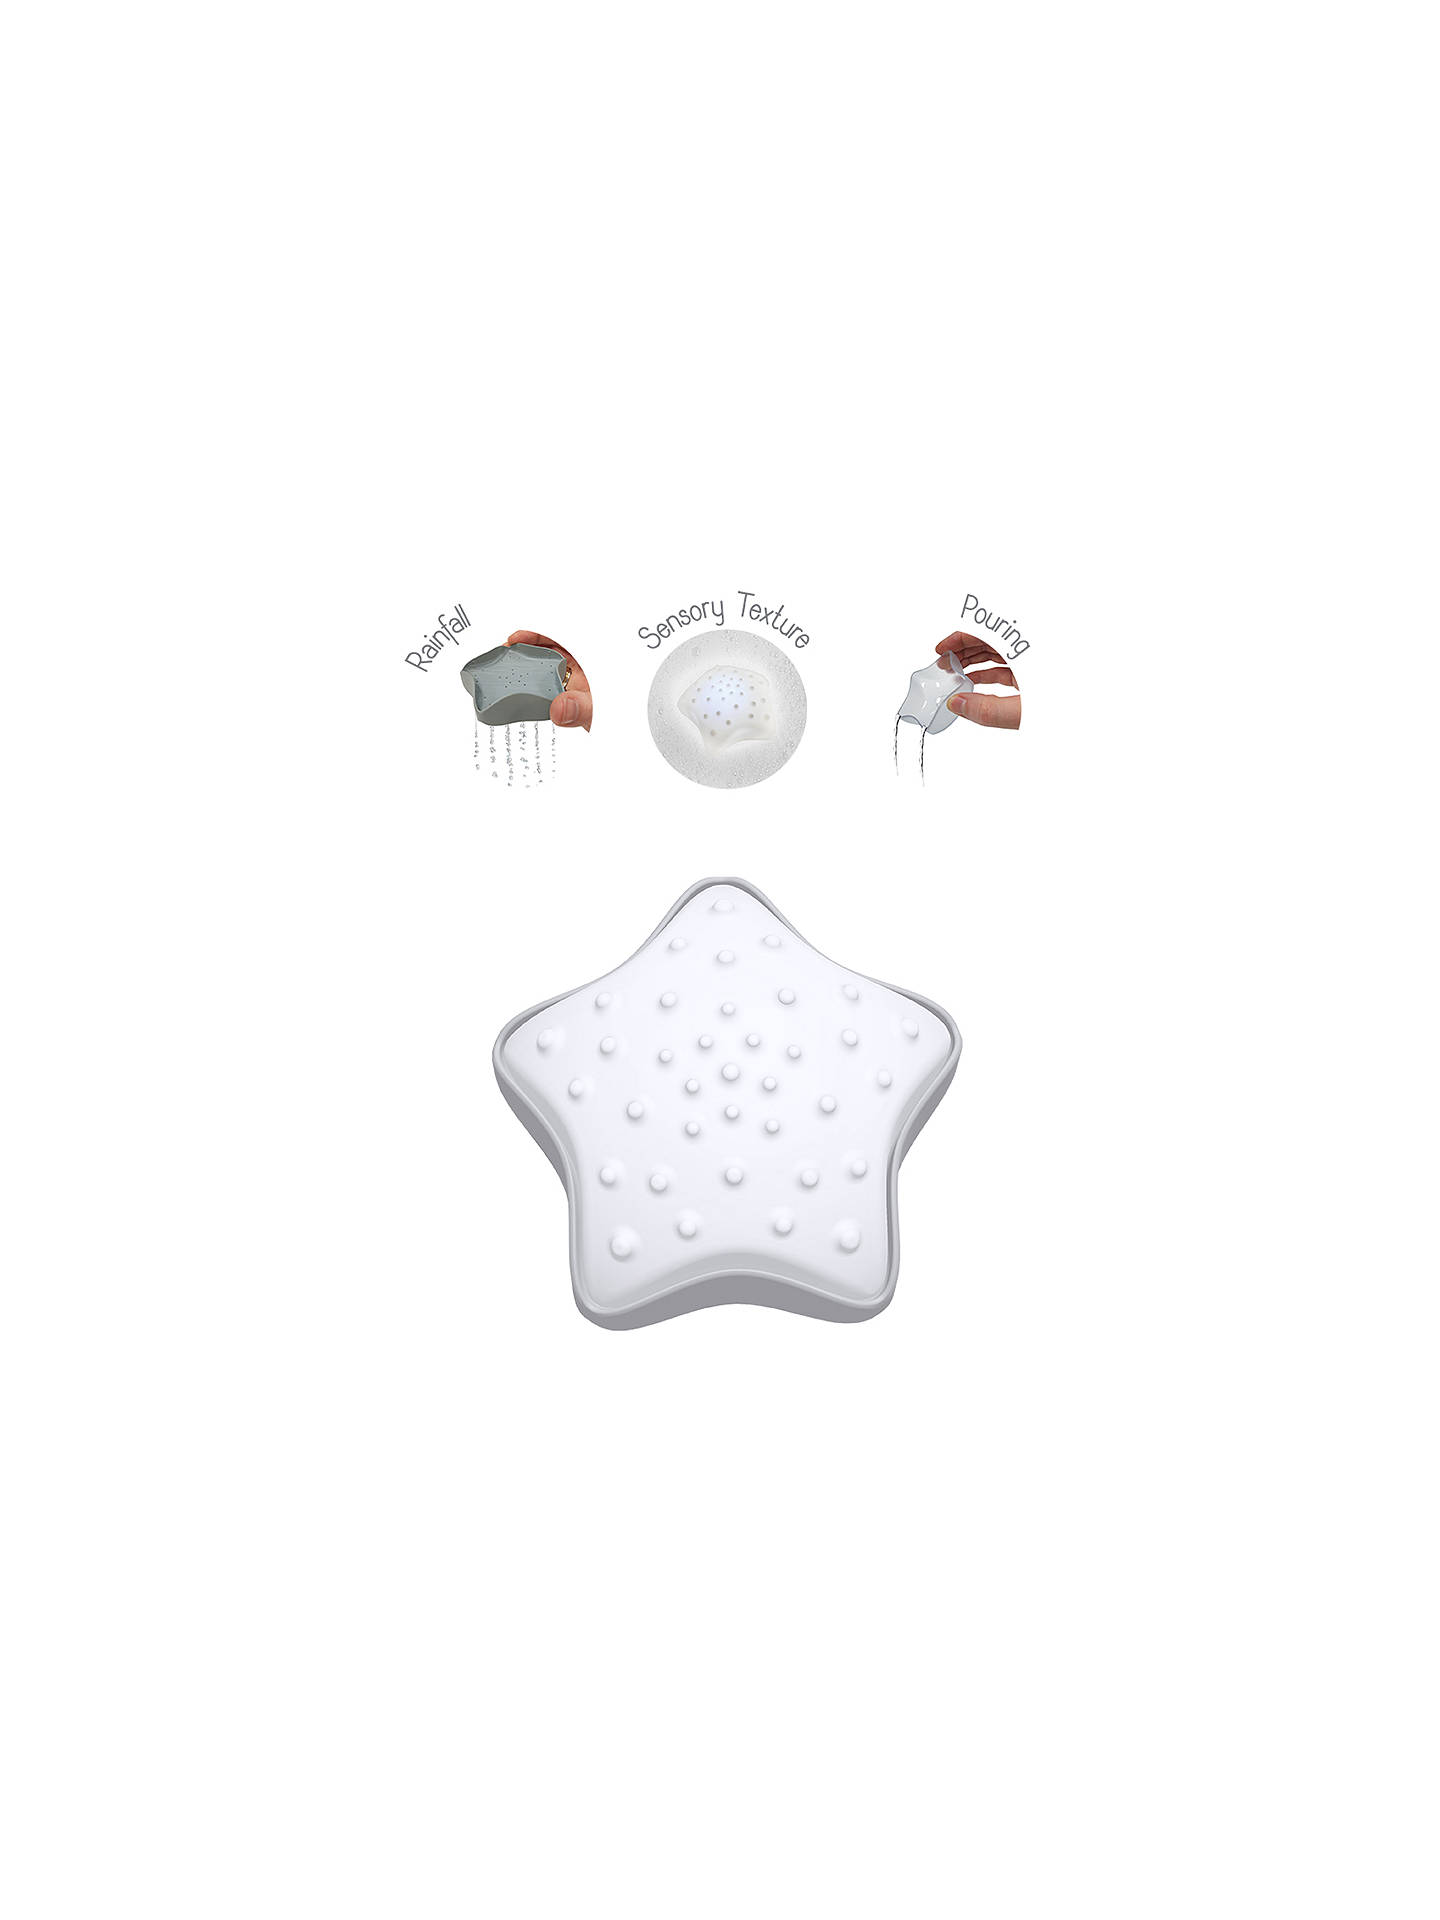 Buy Shnuggle Wishy Star Bath Toy Online at johnlewis.com